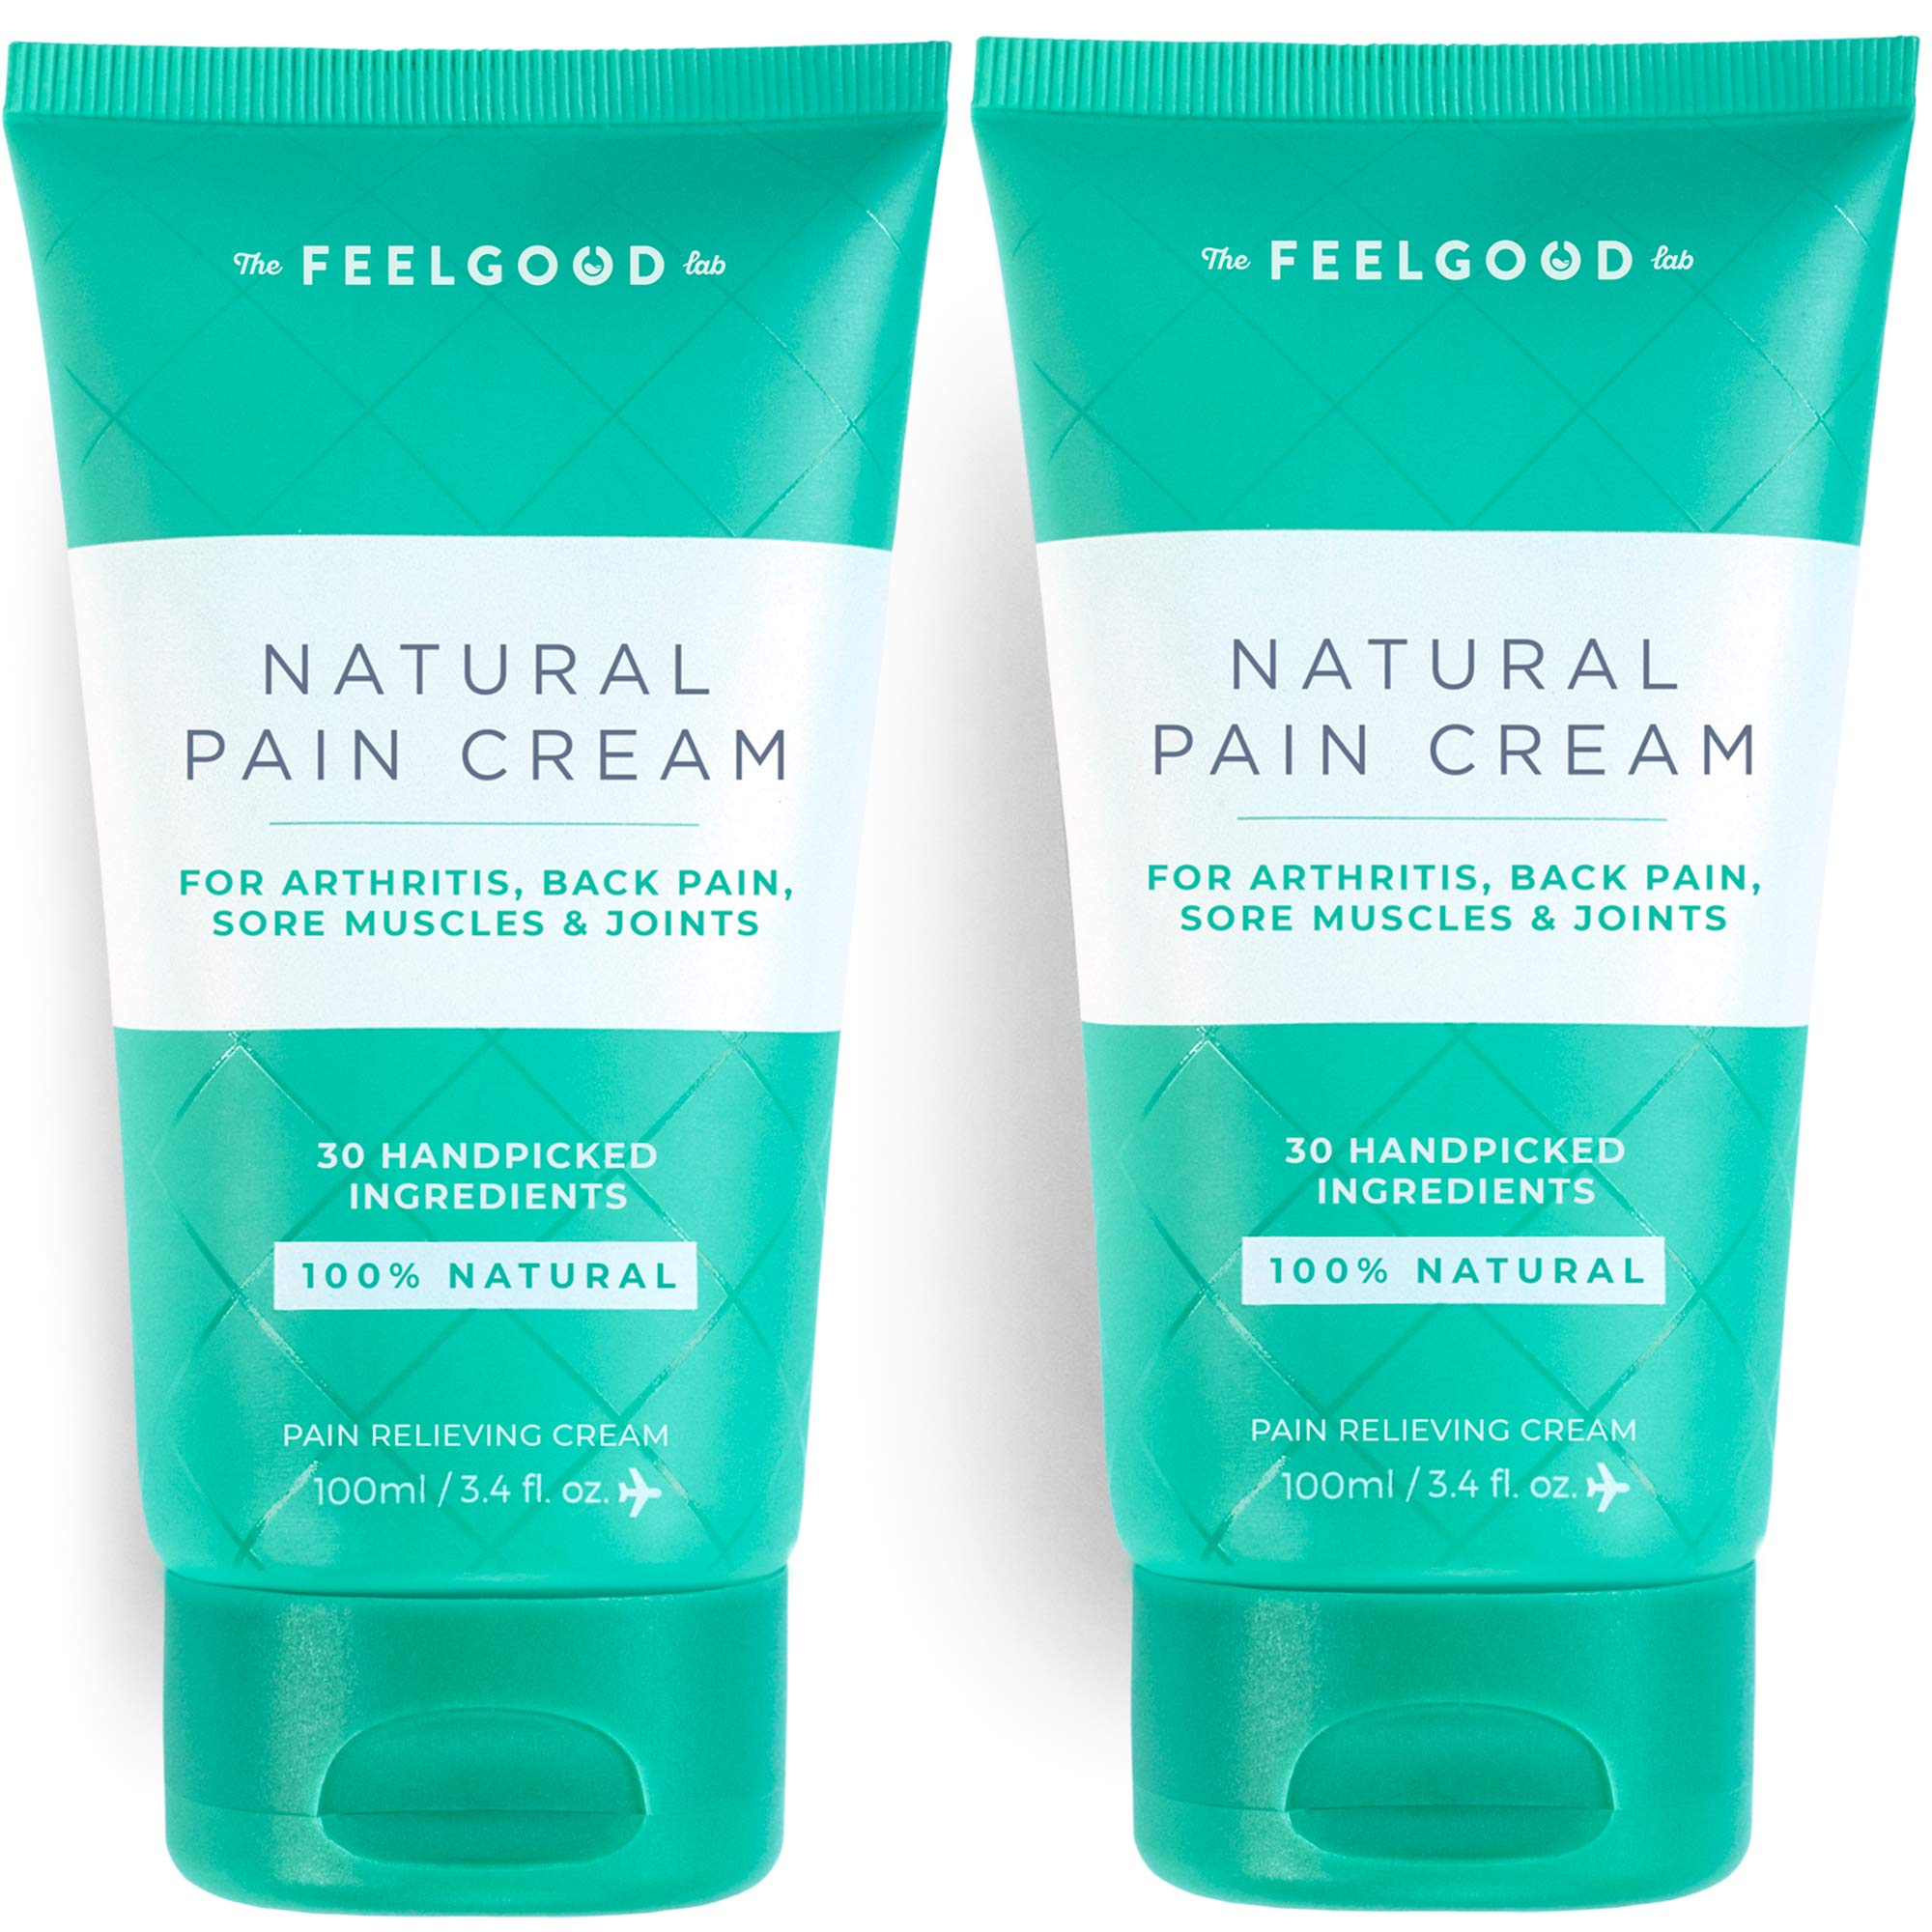 Natural Pain Cream by The Feel Good Lab - 100% Natural, Clean Ingredients - Pain and Soreness Relief for Muscles, Joints & Arthritis (3.4oz, 2 Count) by The Feel Good Lab